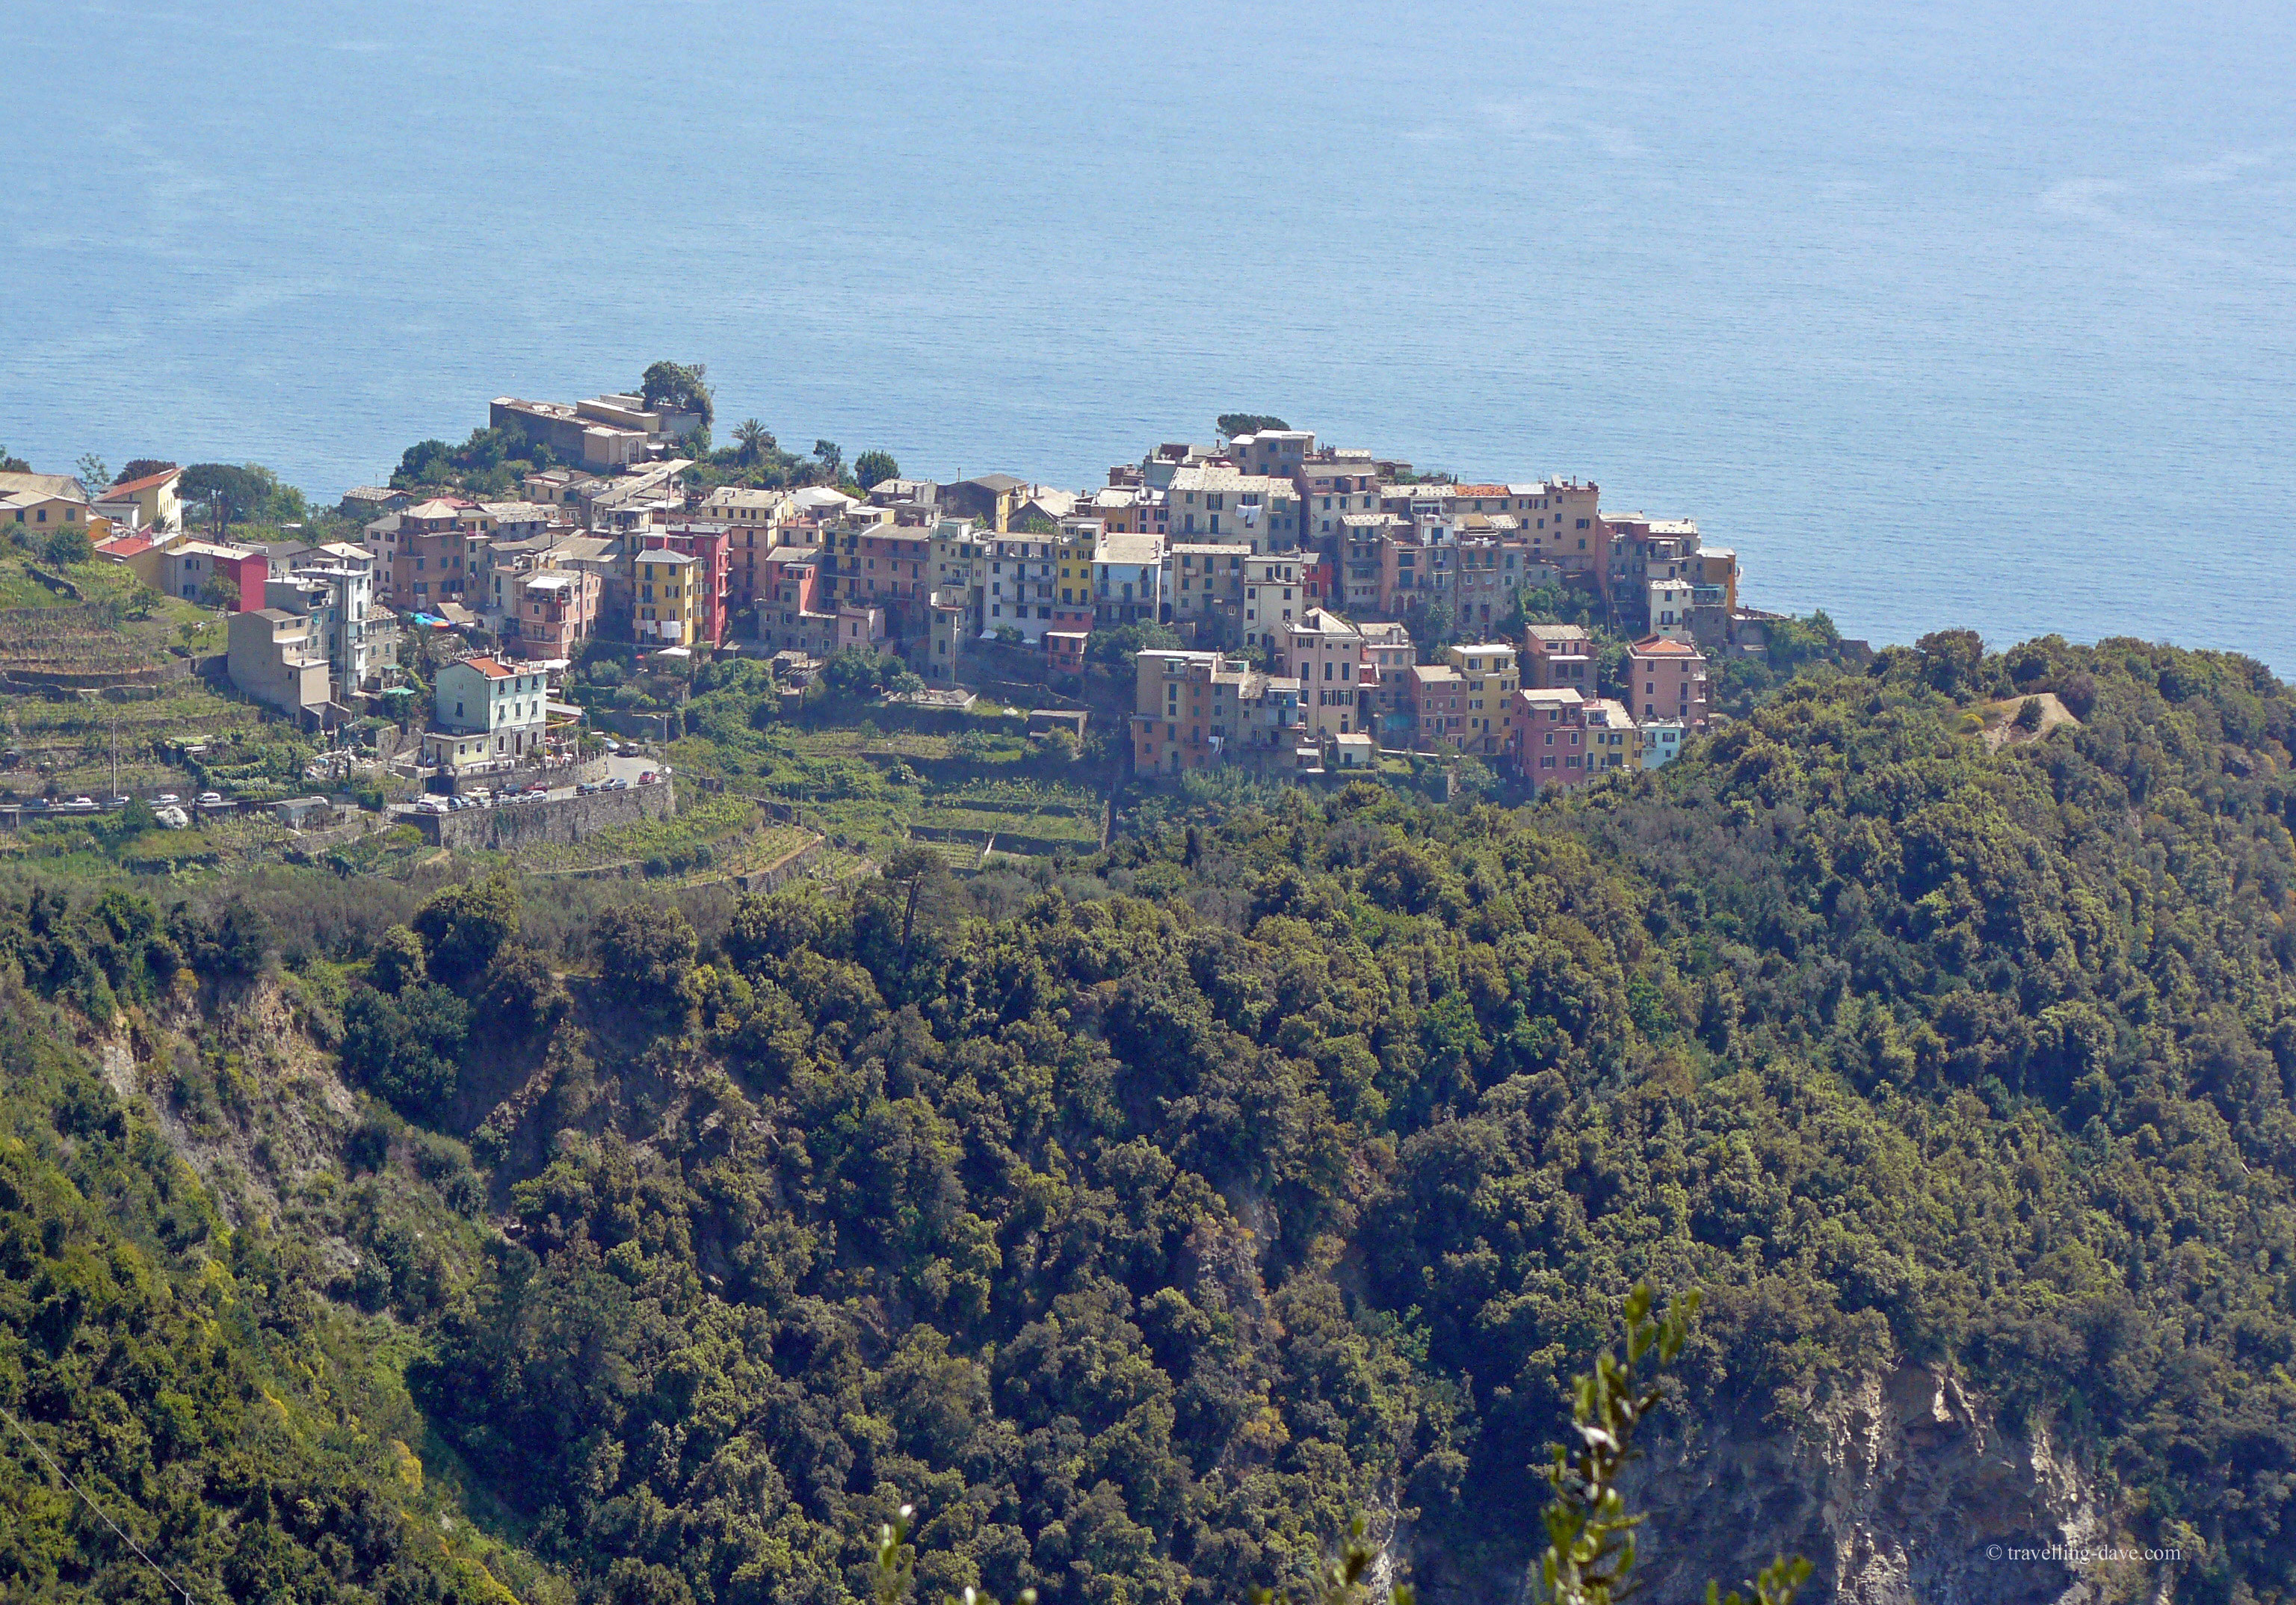 Looking down on the village of Corniglia in Italy